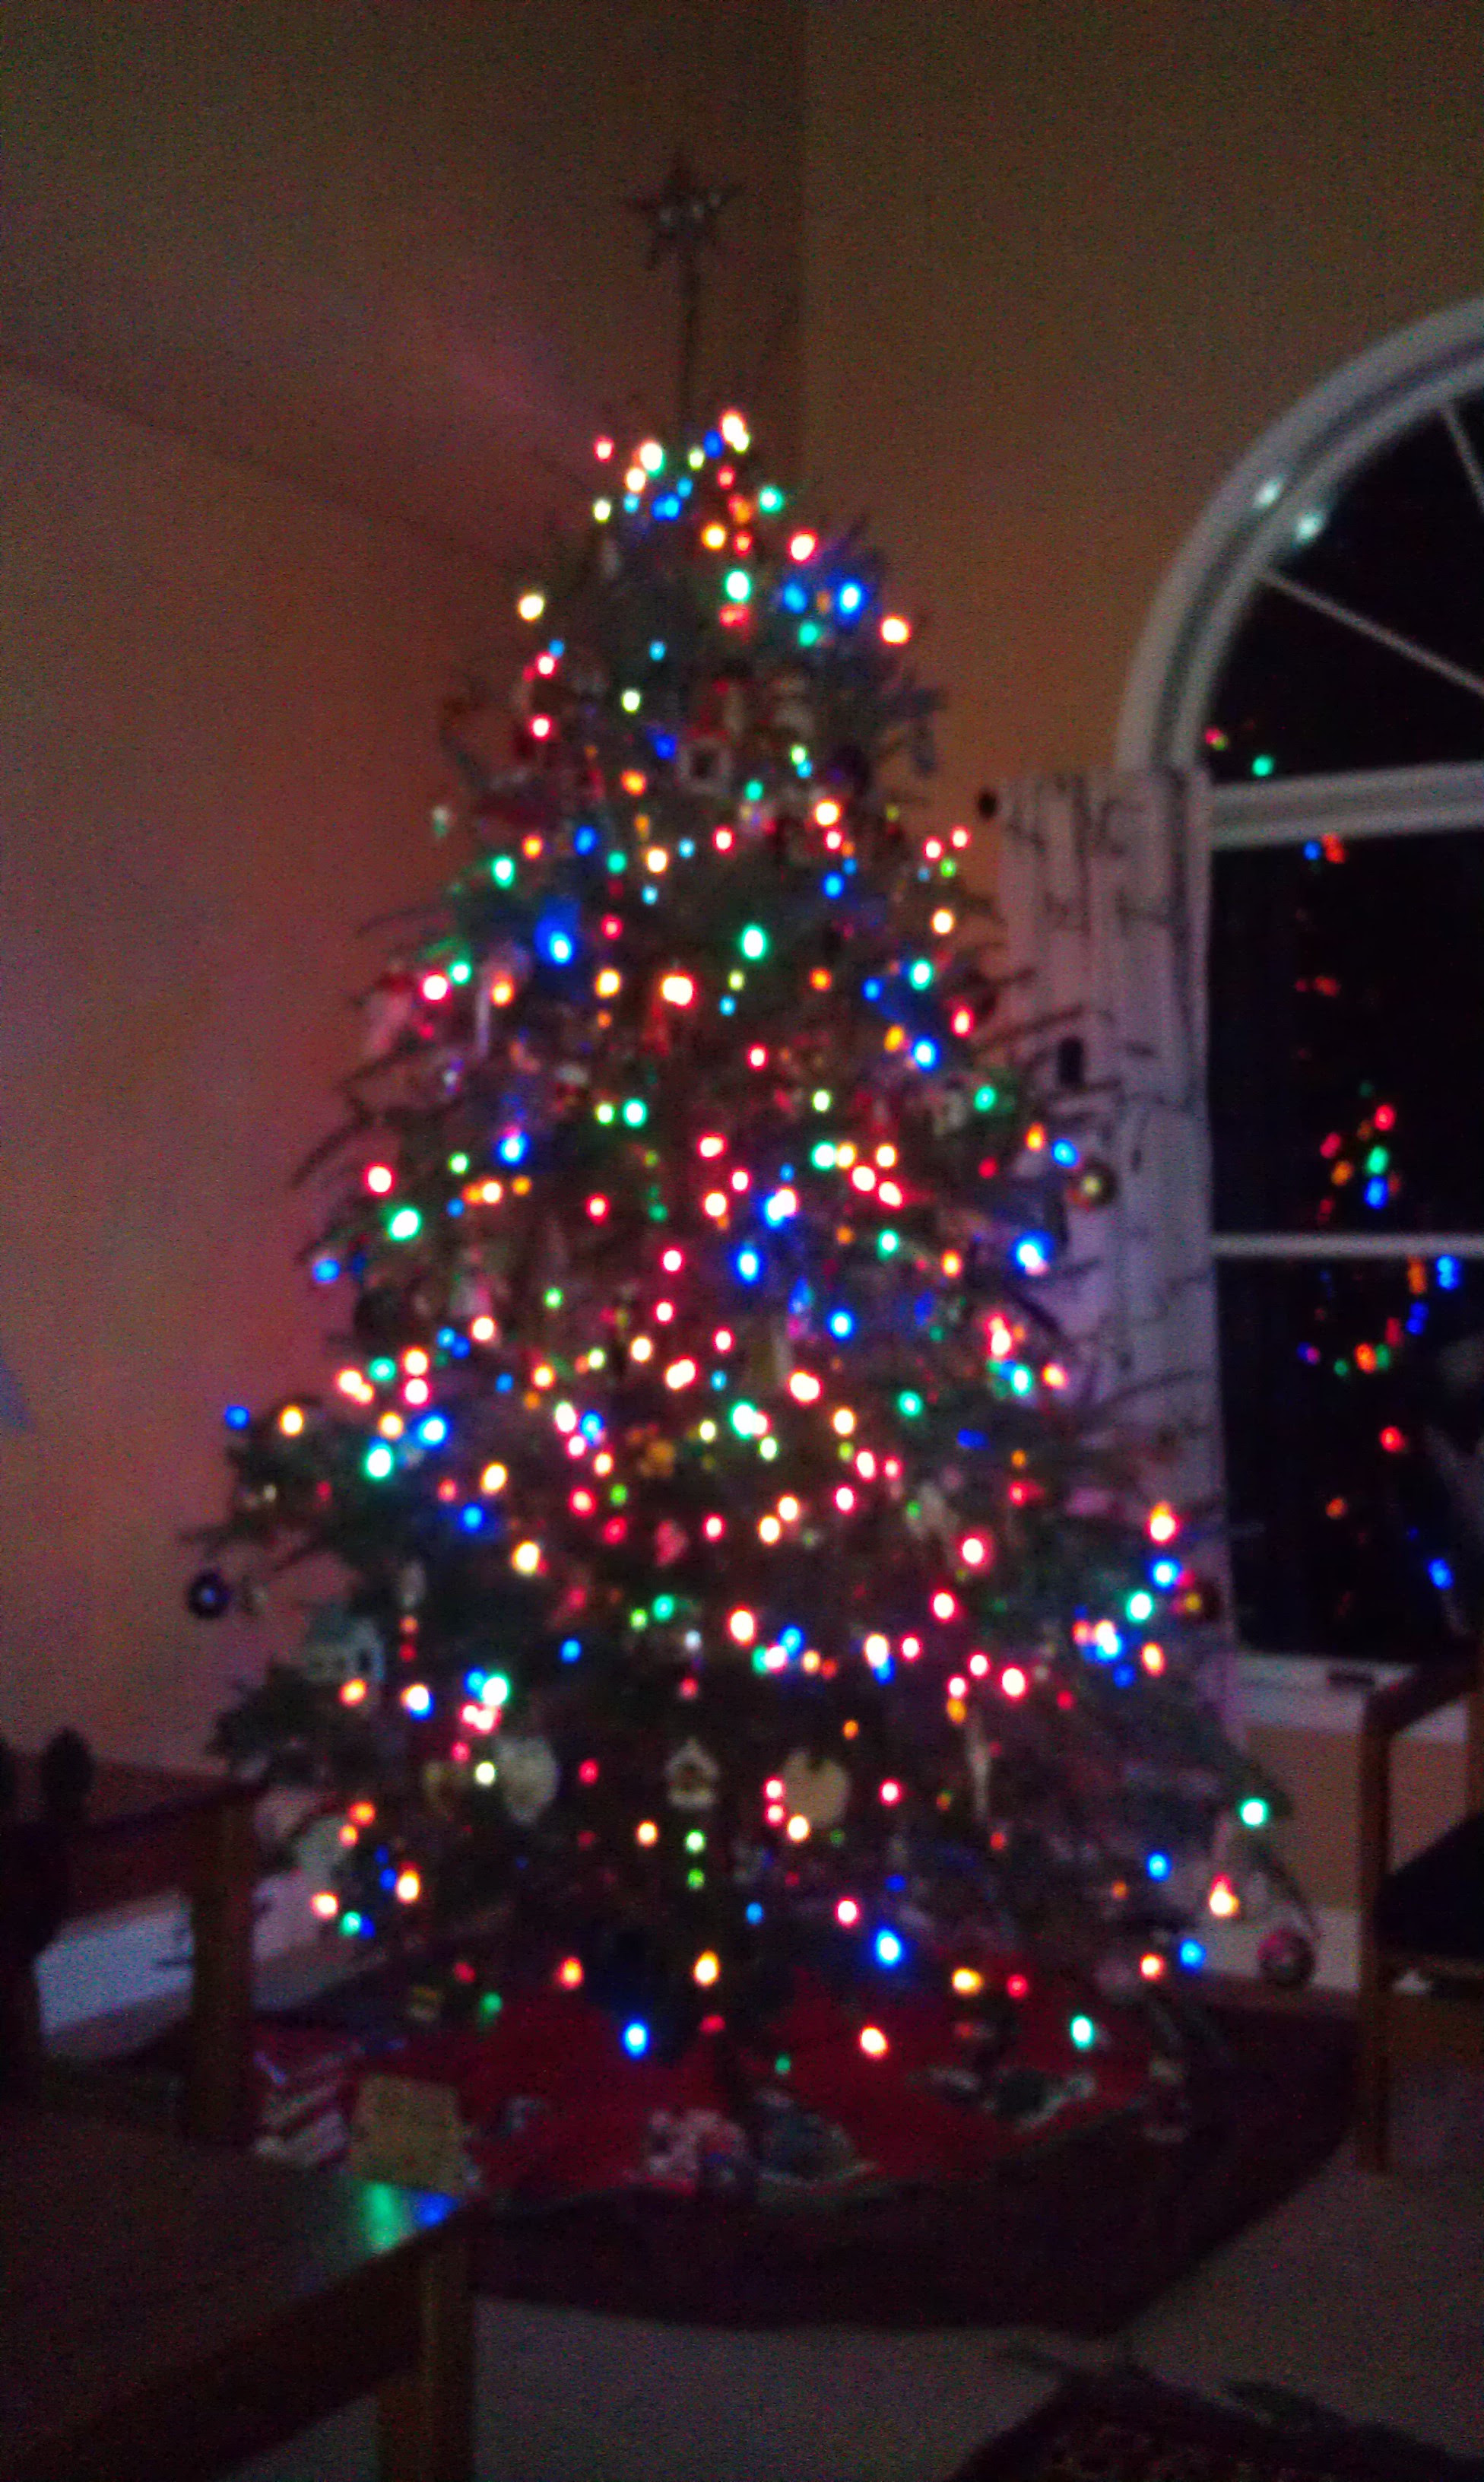 Christmas Tree Decorations With Colored Lights | Decorating Ideas